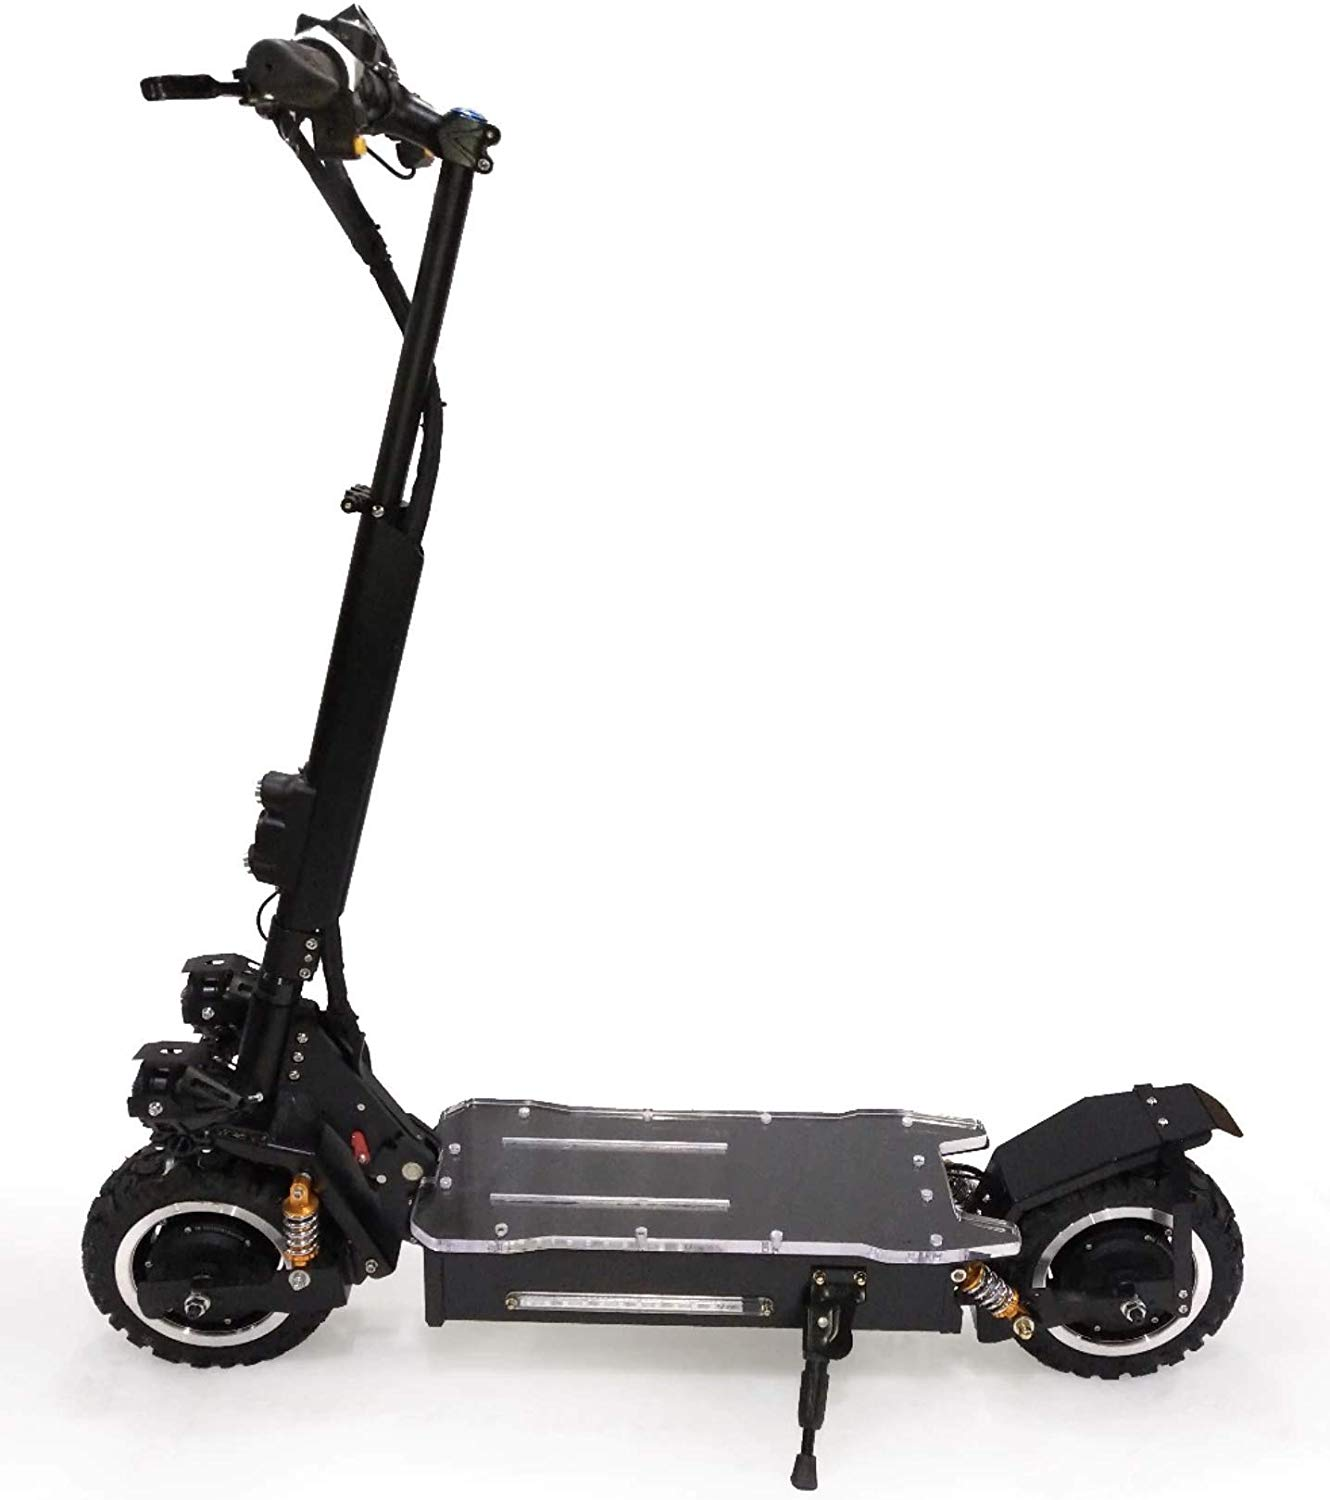 Outstorm MAXX most powerful electric scooter